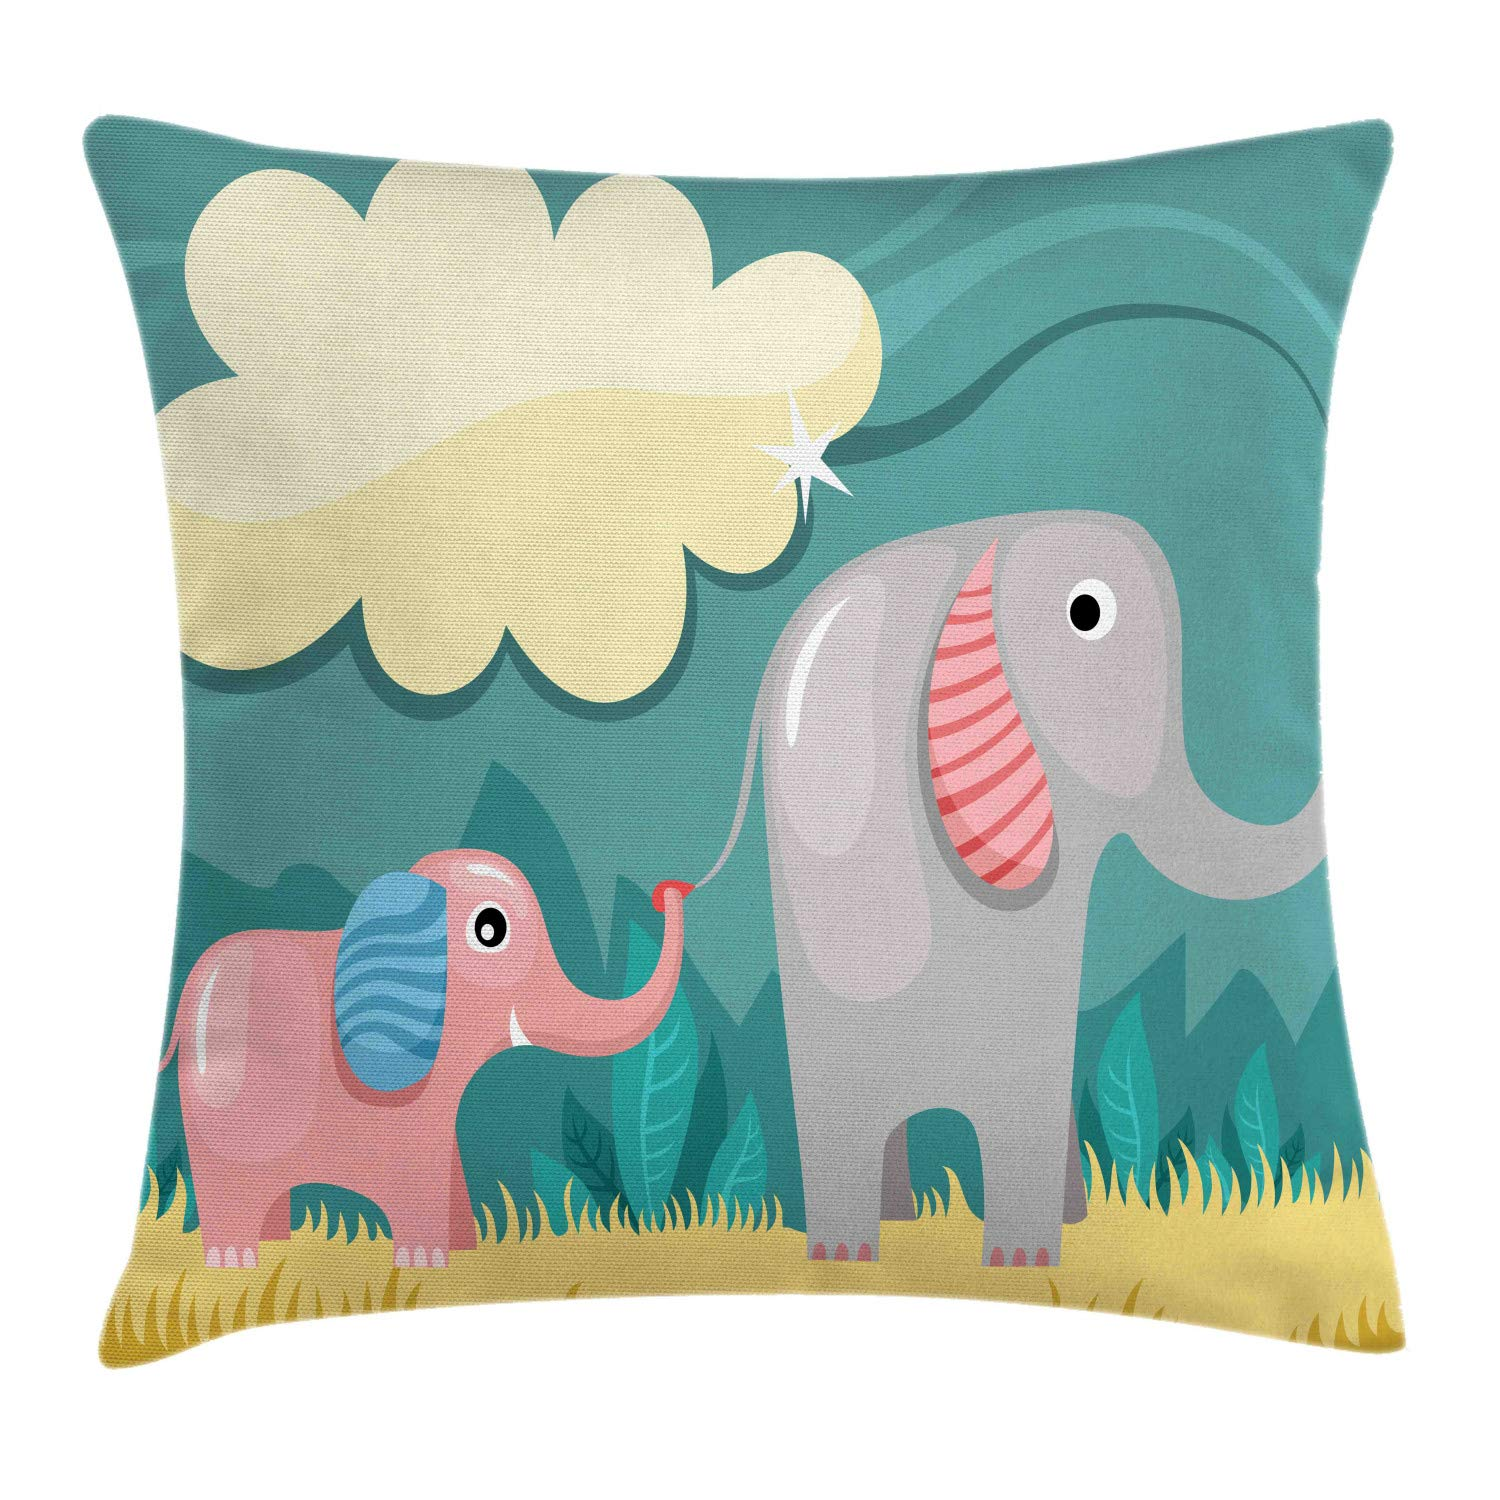 Ambesonne Elephant Throw Pillow Cushion Cover, Nursery Style Graphic of Animal Baby and Mom Pastel Cloud, Decorative Square Accent Pillow Case, 28'' X 28'', Cadet Blue Multicolor by Ambesonne